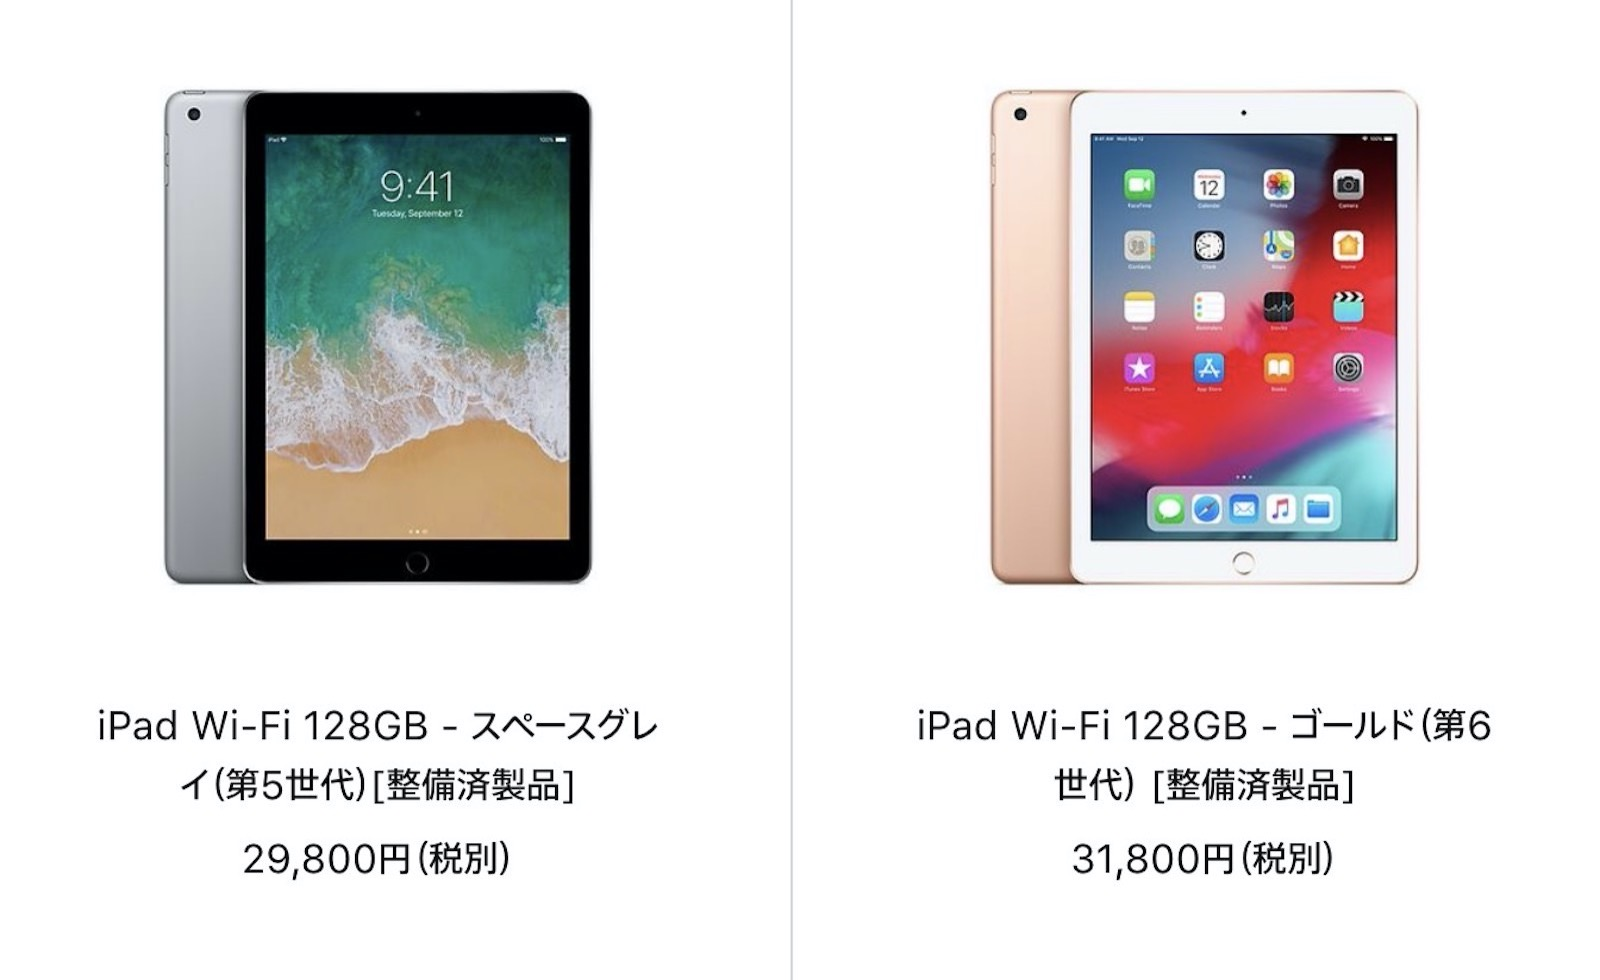 Ipad refurbished sale